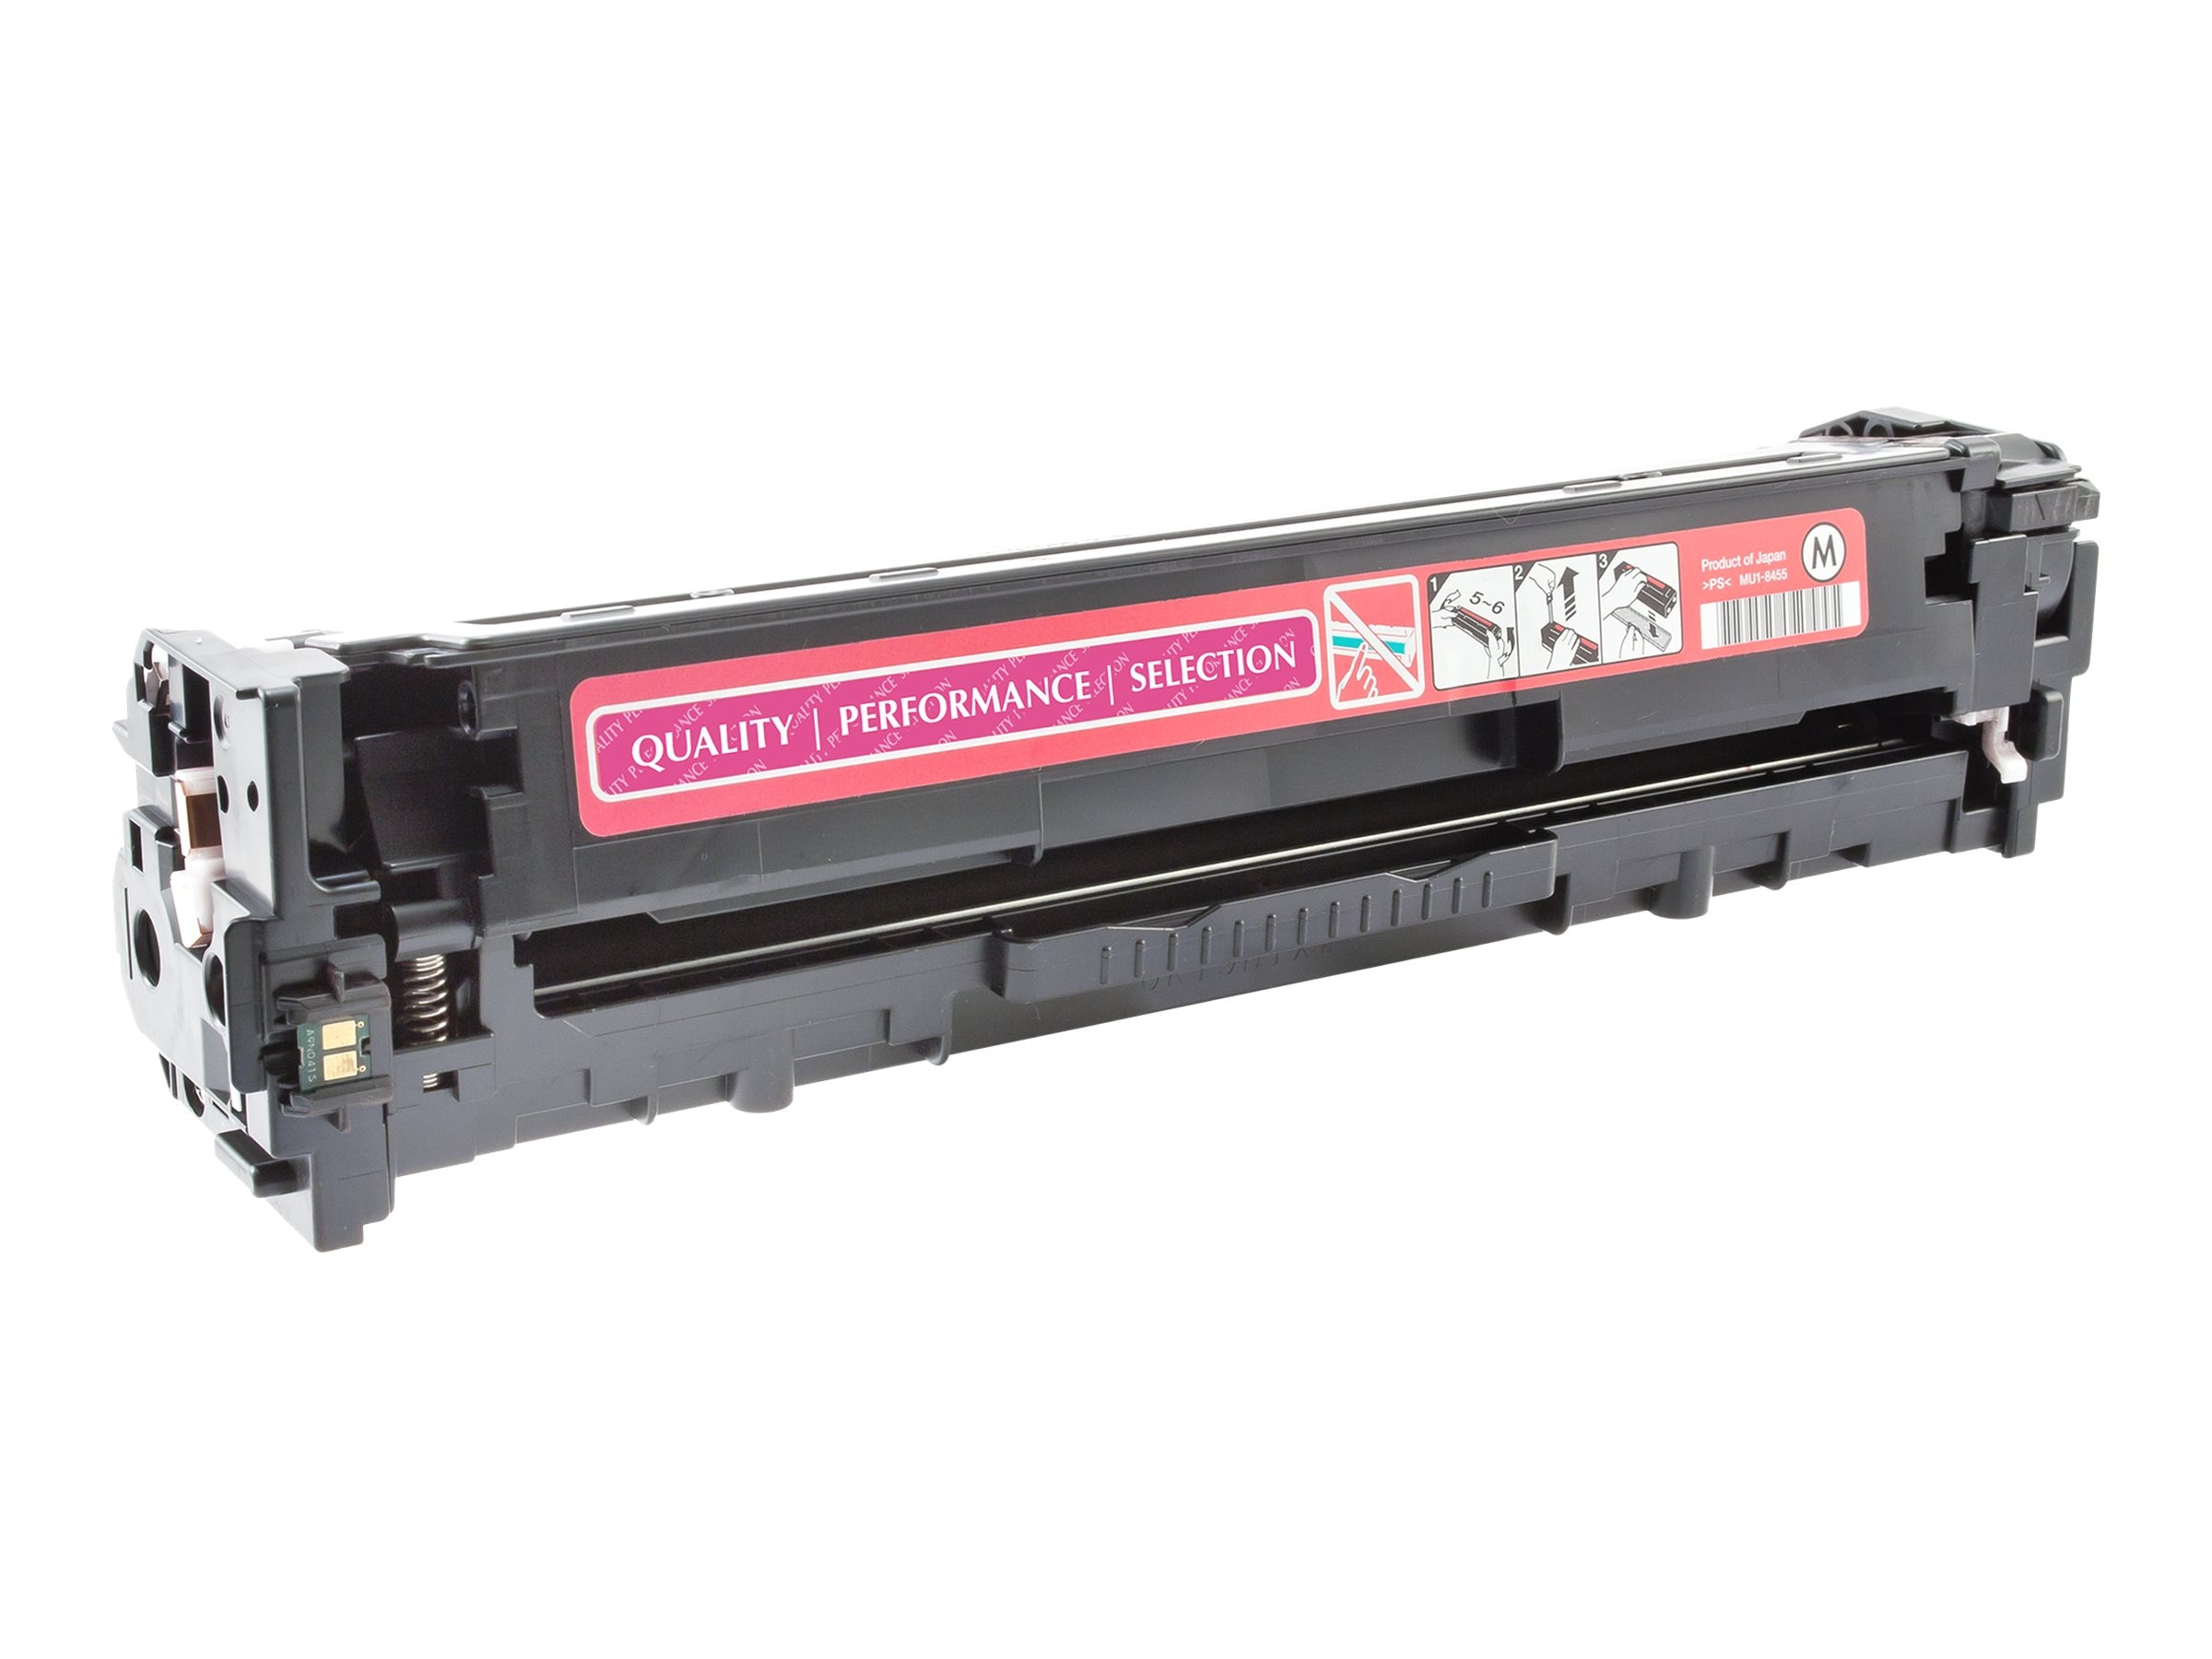 V7 CE323AG Magenta Toner Cartridge for HP Color LaserJet Pro CM1415 & CP1525, V71415M